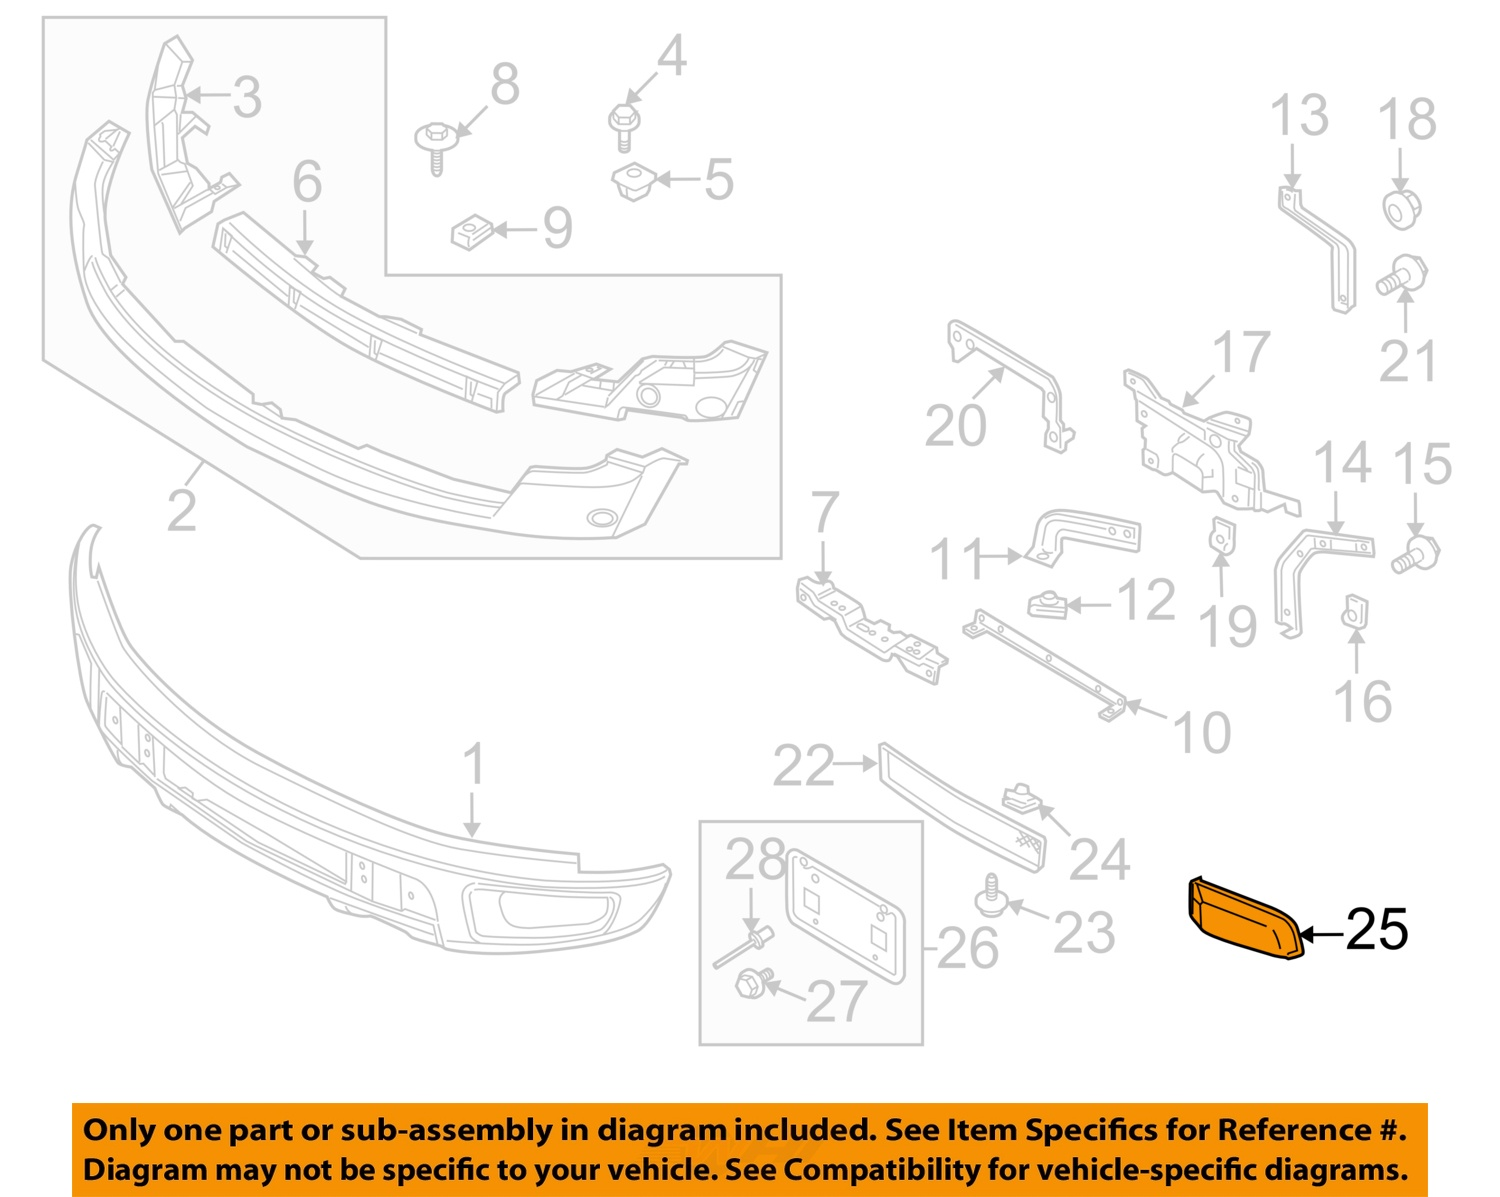 ford oem 10-14 f-150 front bumper-side cover right al3z17e810a toyota camry front bumper diagram #3